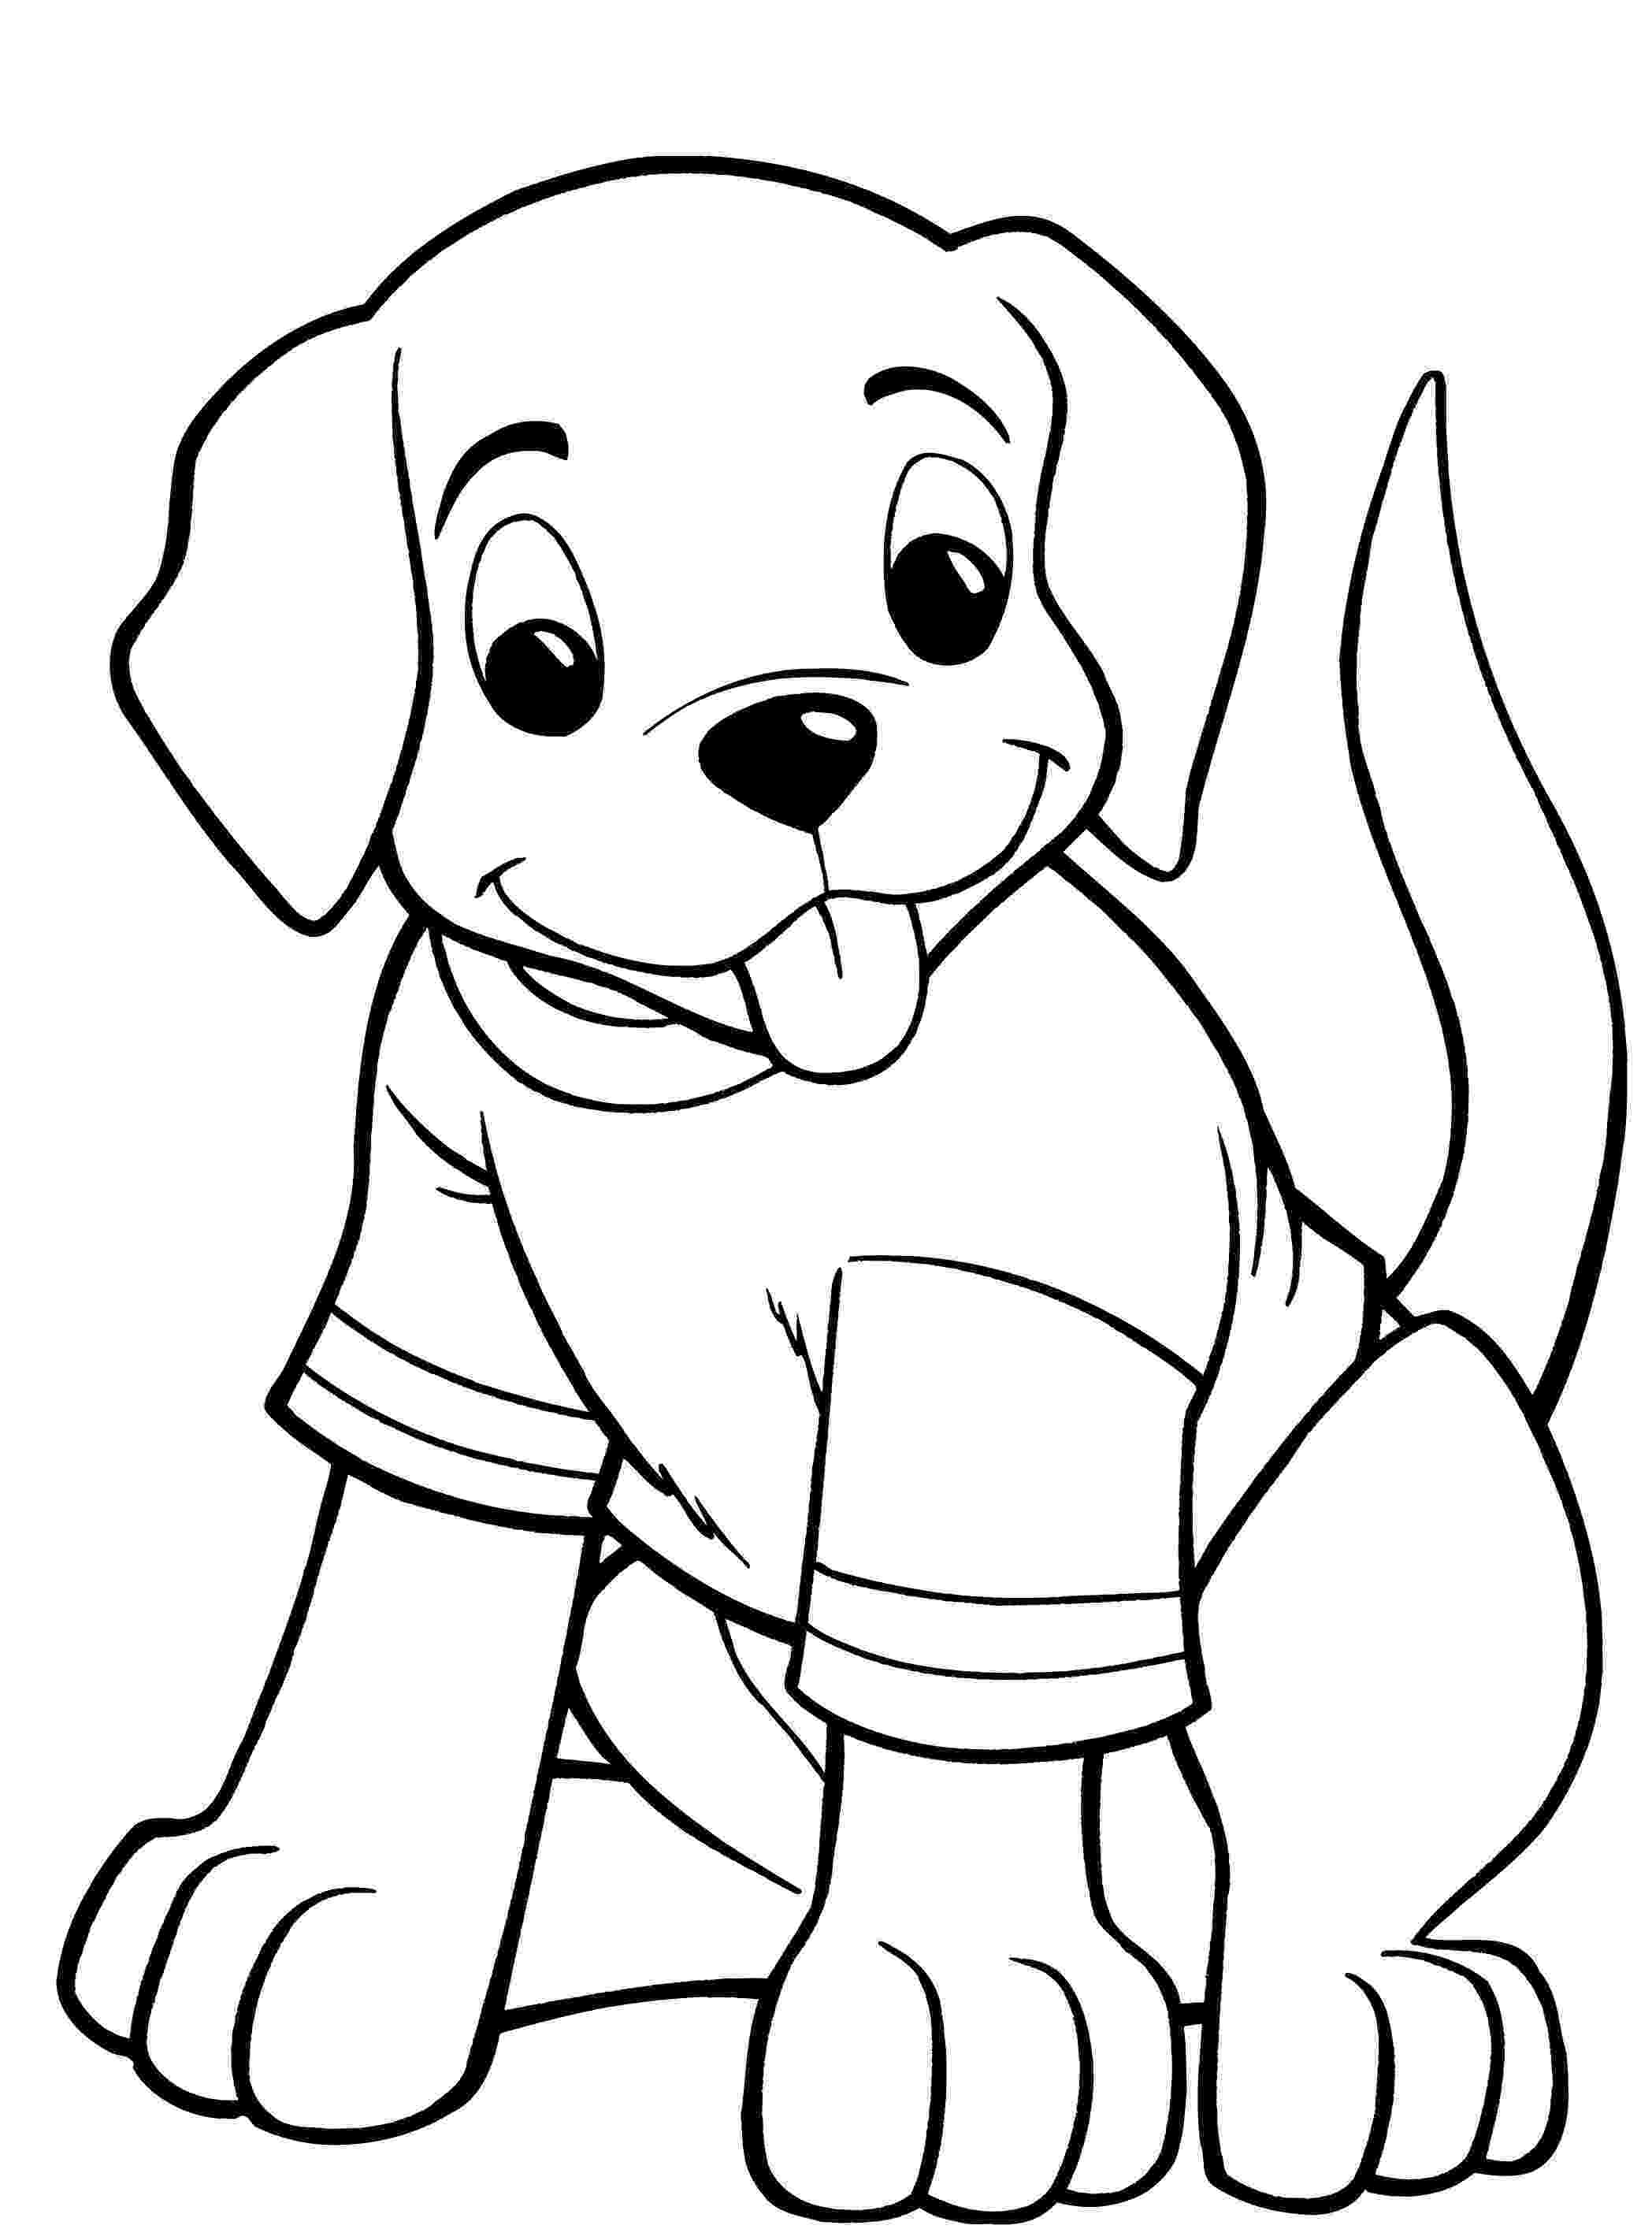 coloring pictures dogs free printable dog coloring pages for kids coloring dogs pictures